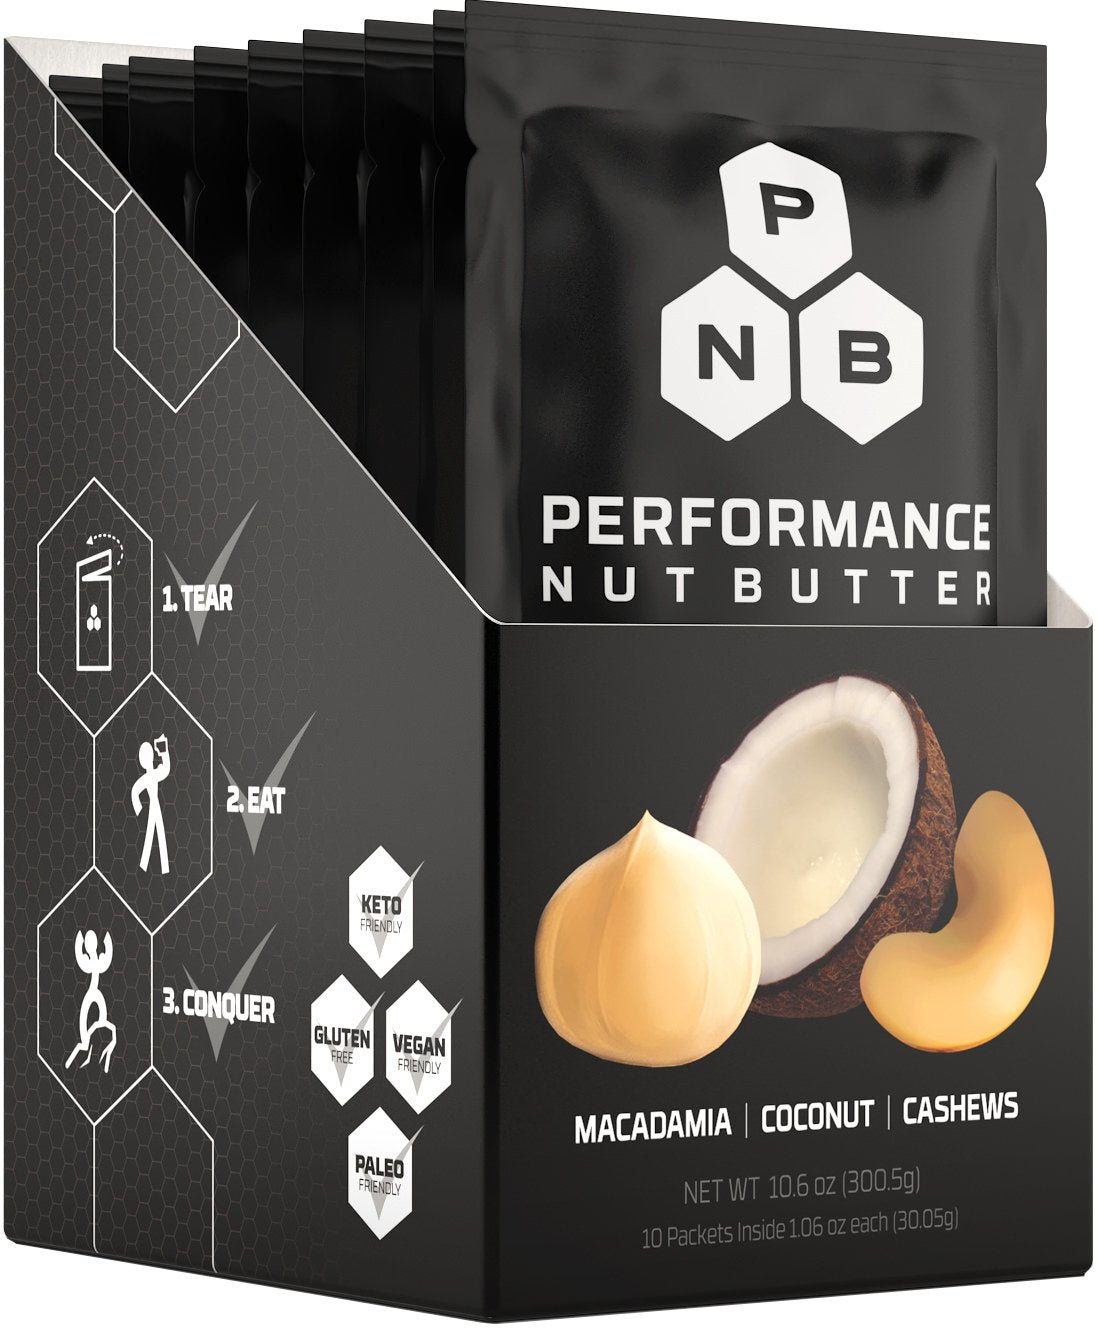 Performance Nut Butter: Macadamia, Coconut & Cashew Blend (Box of 10 Packets)